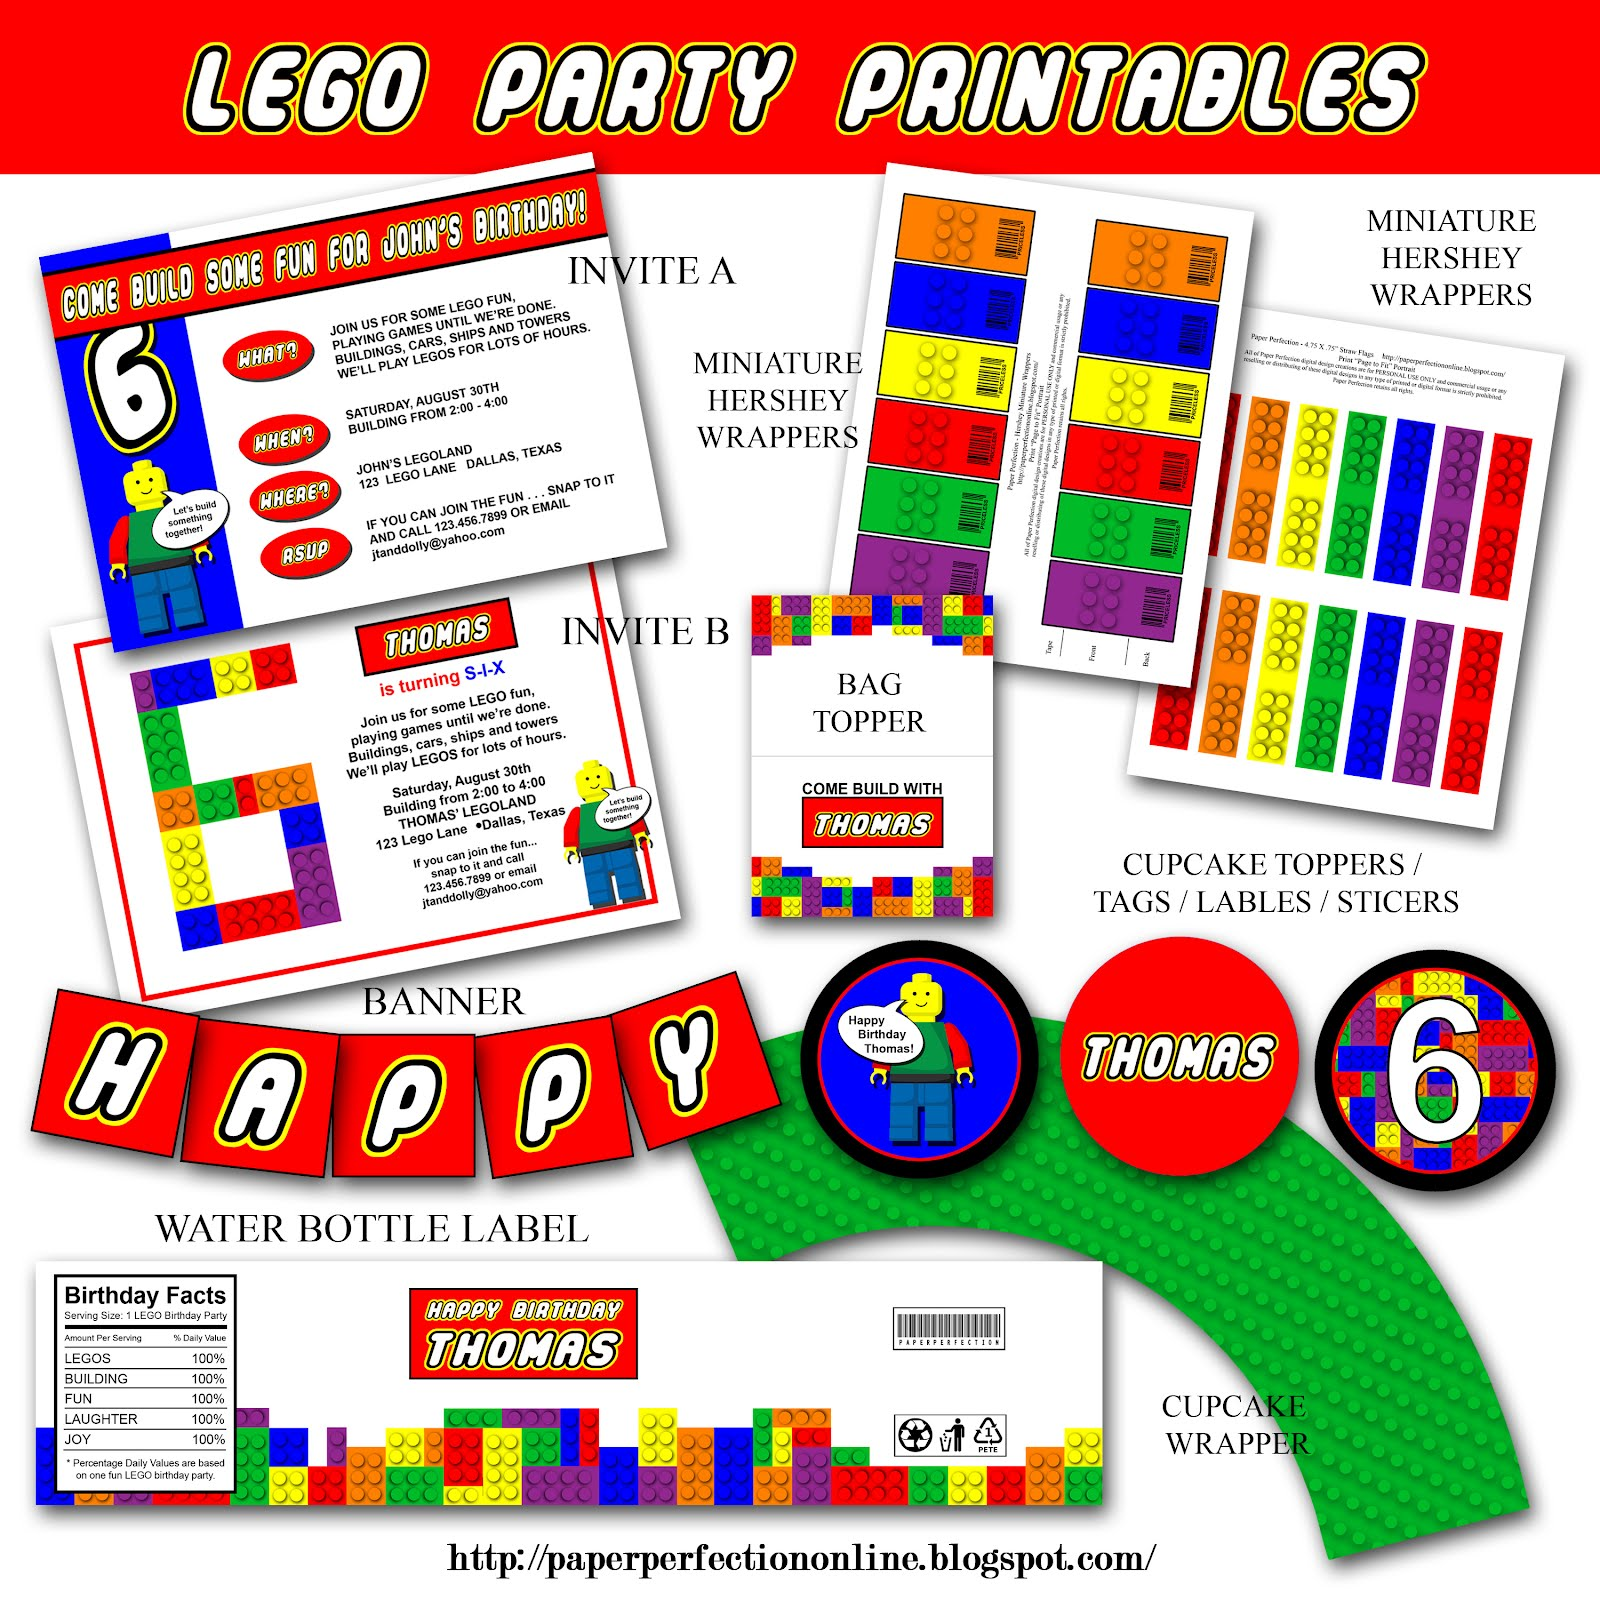 Paper Perfection: LEGO PARTY INVITATION AND PARTY PRINTABLES